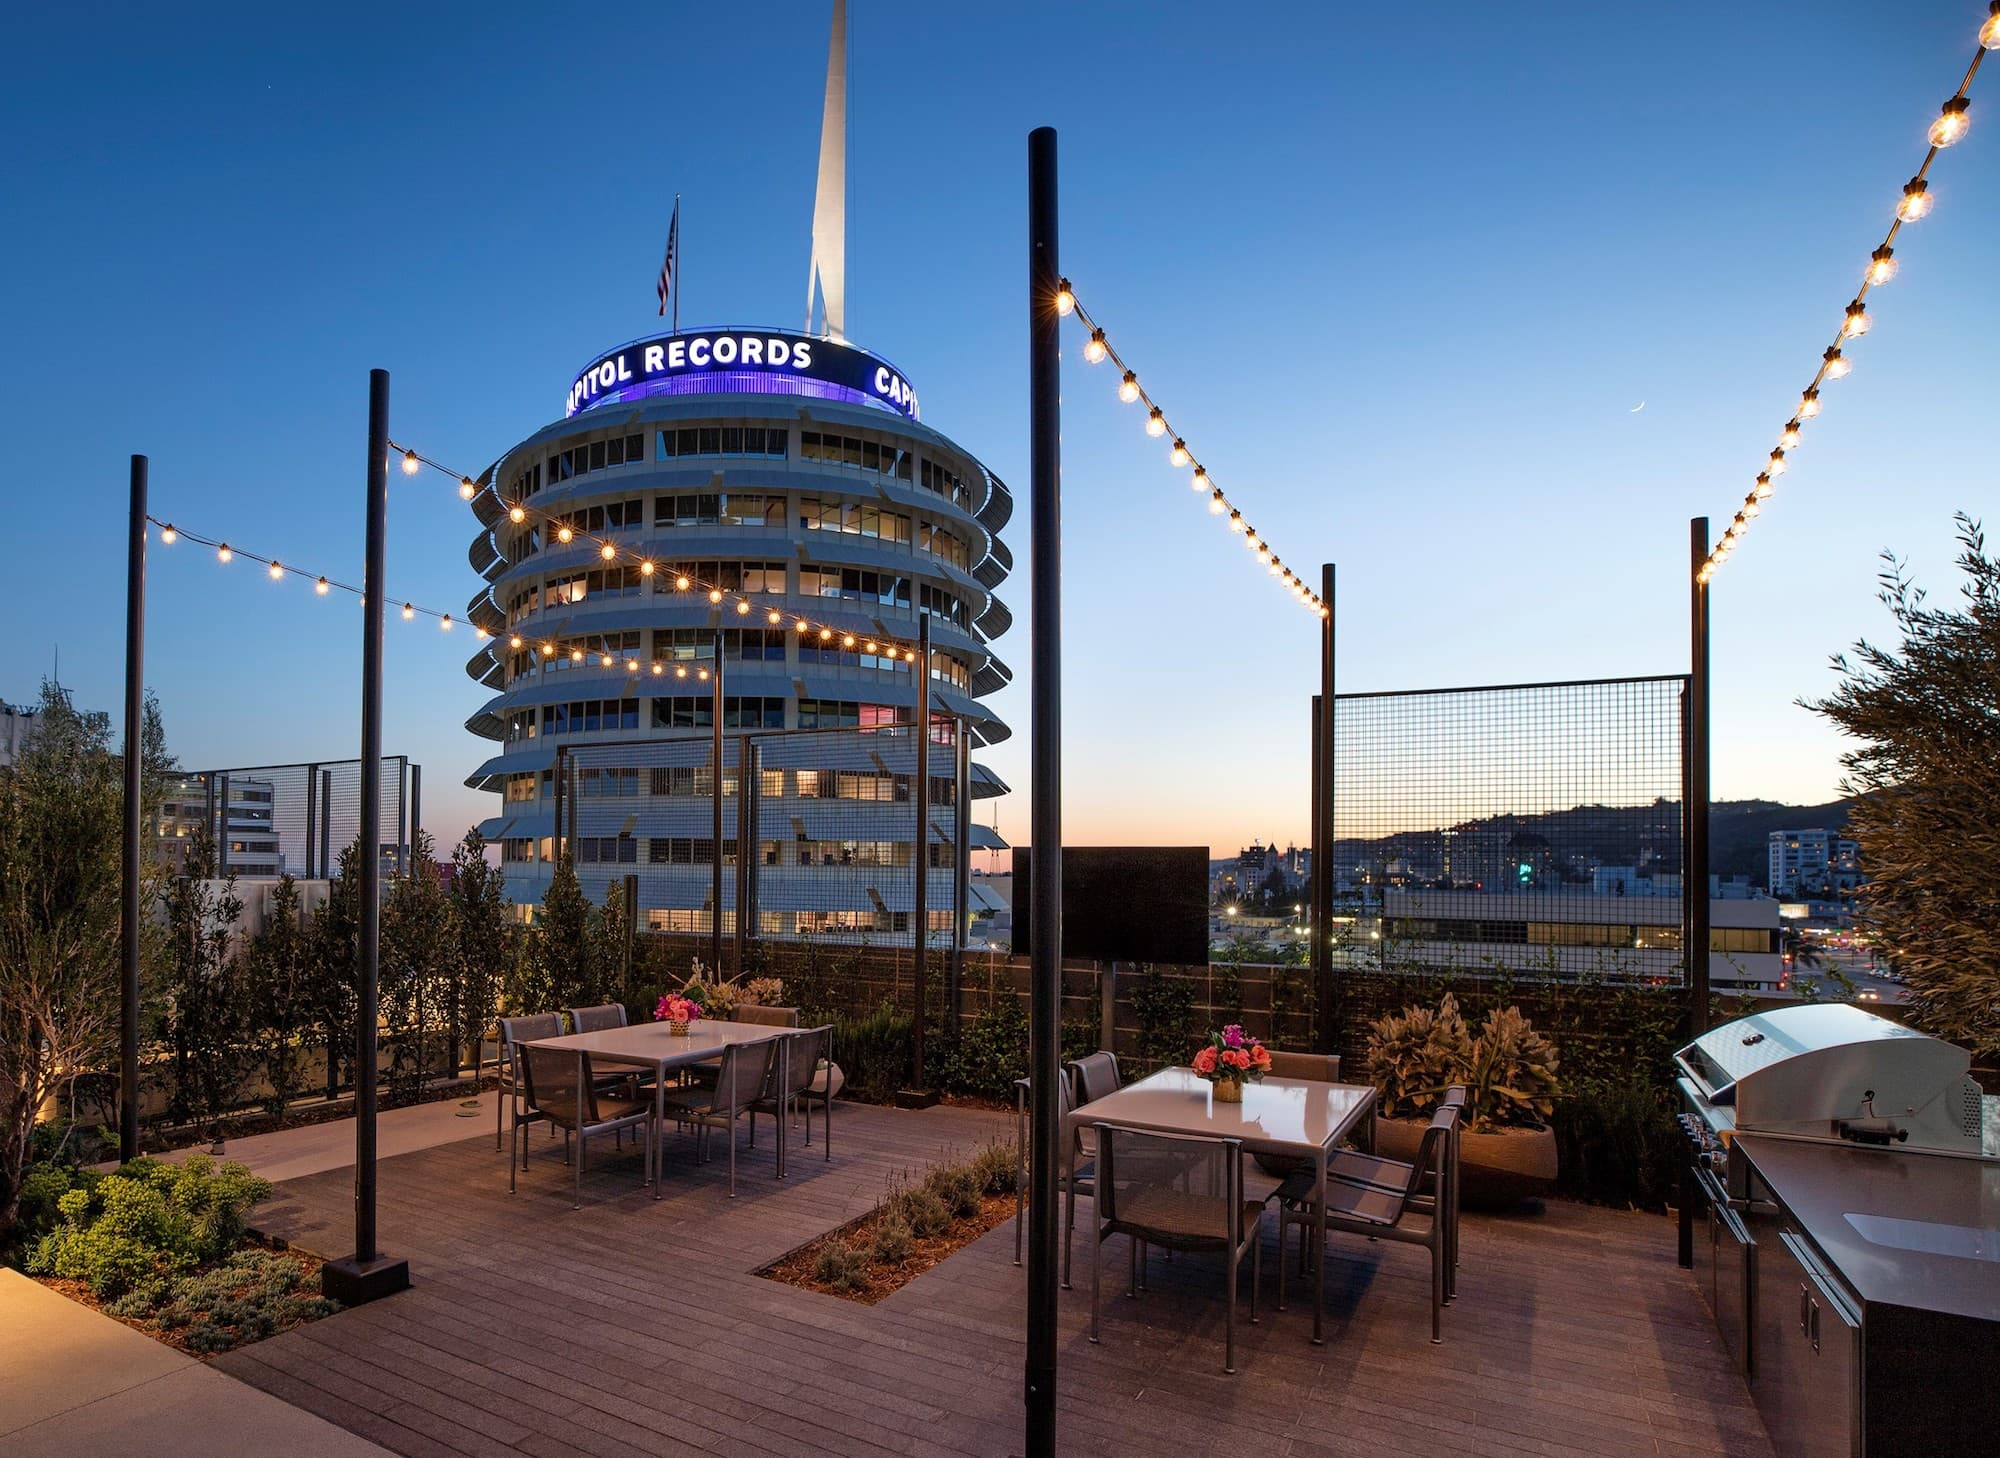 Argyle House Roof Top with view of Capitol Records Building